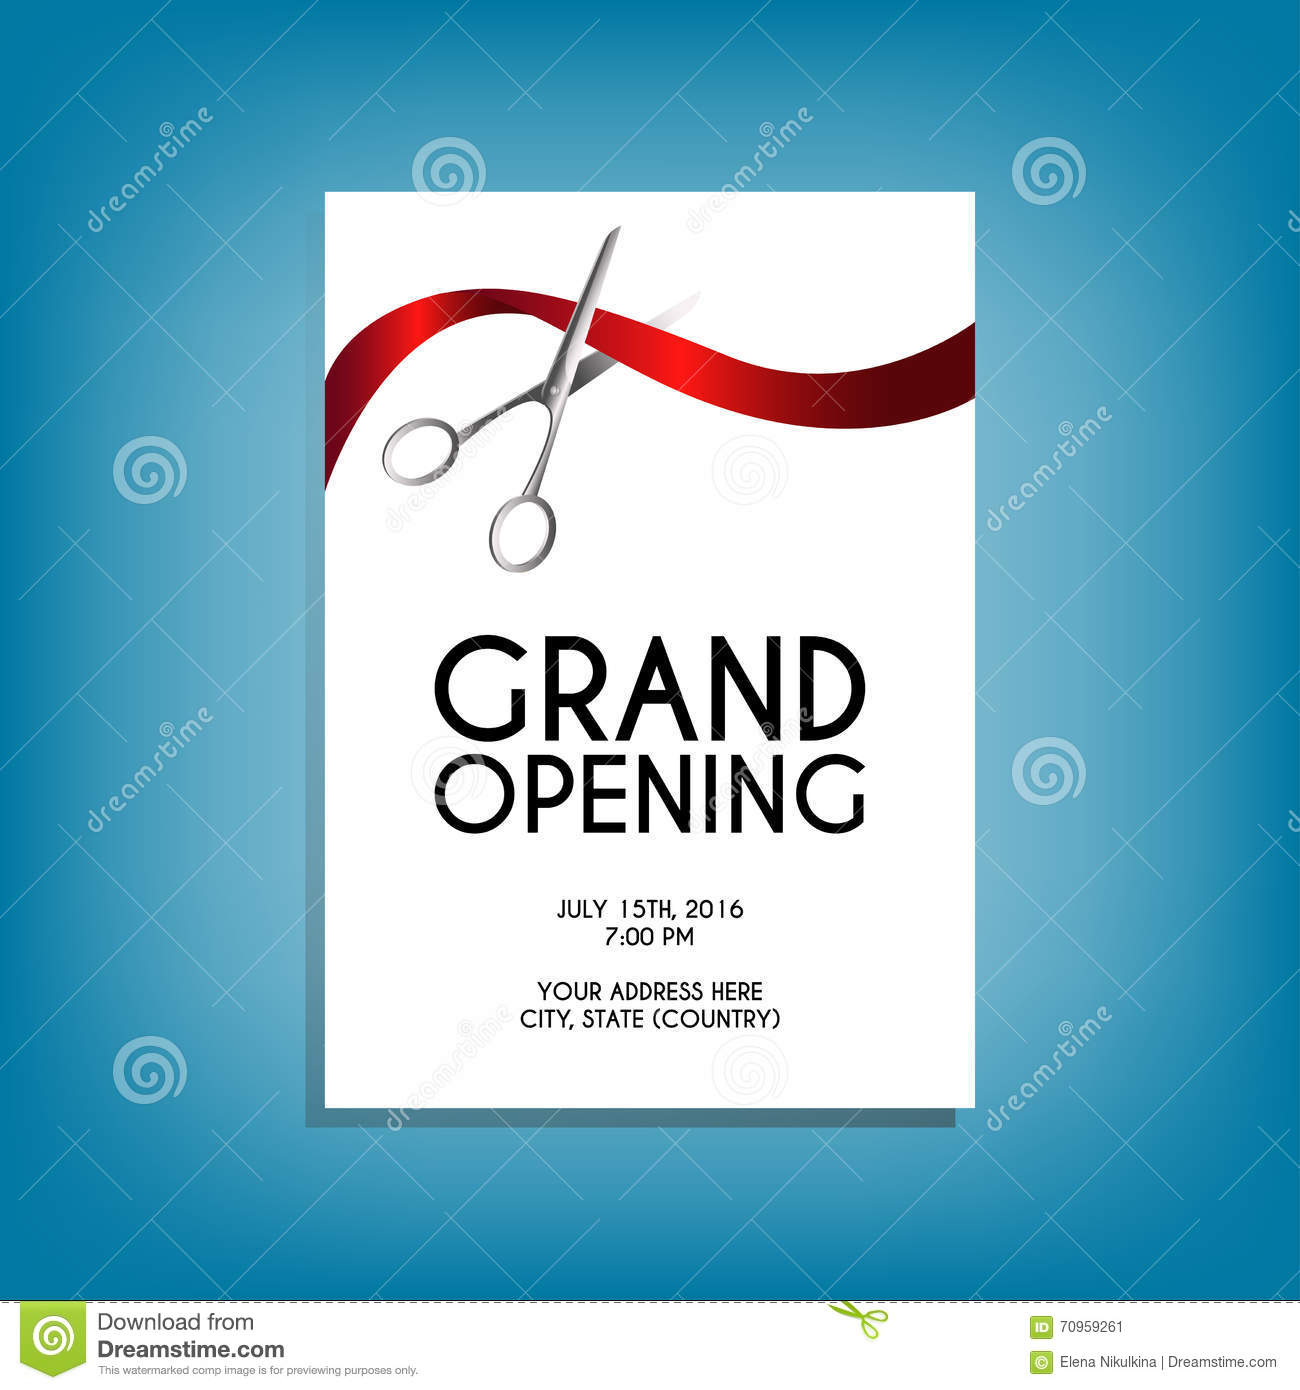 Grand Opening Flyer Mockup With Silver Scissors Cutting Red – Grand Opening Flyer